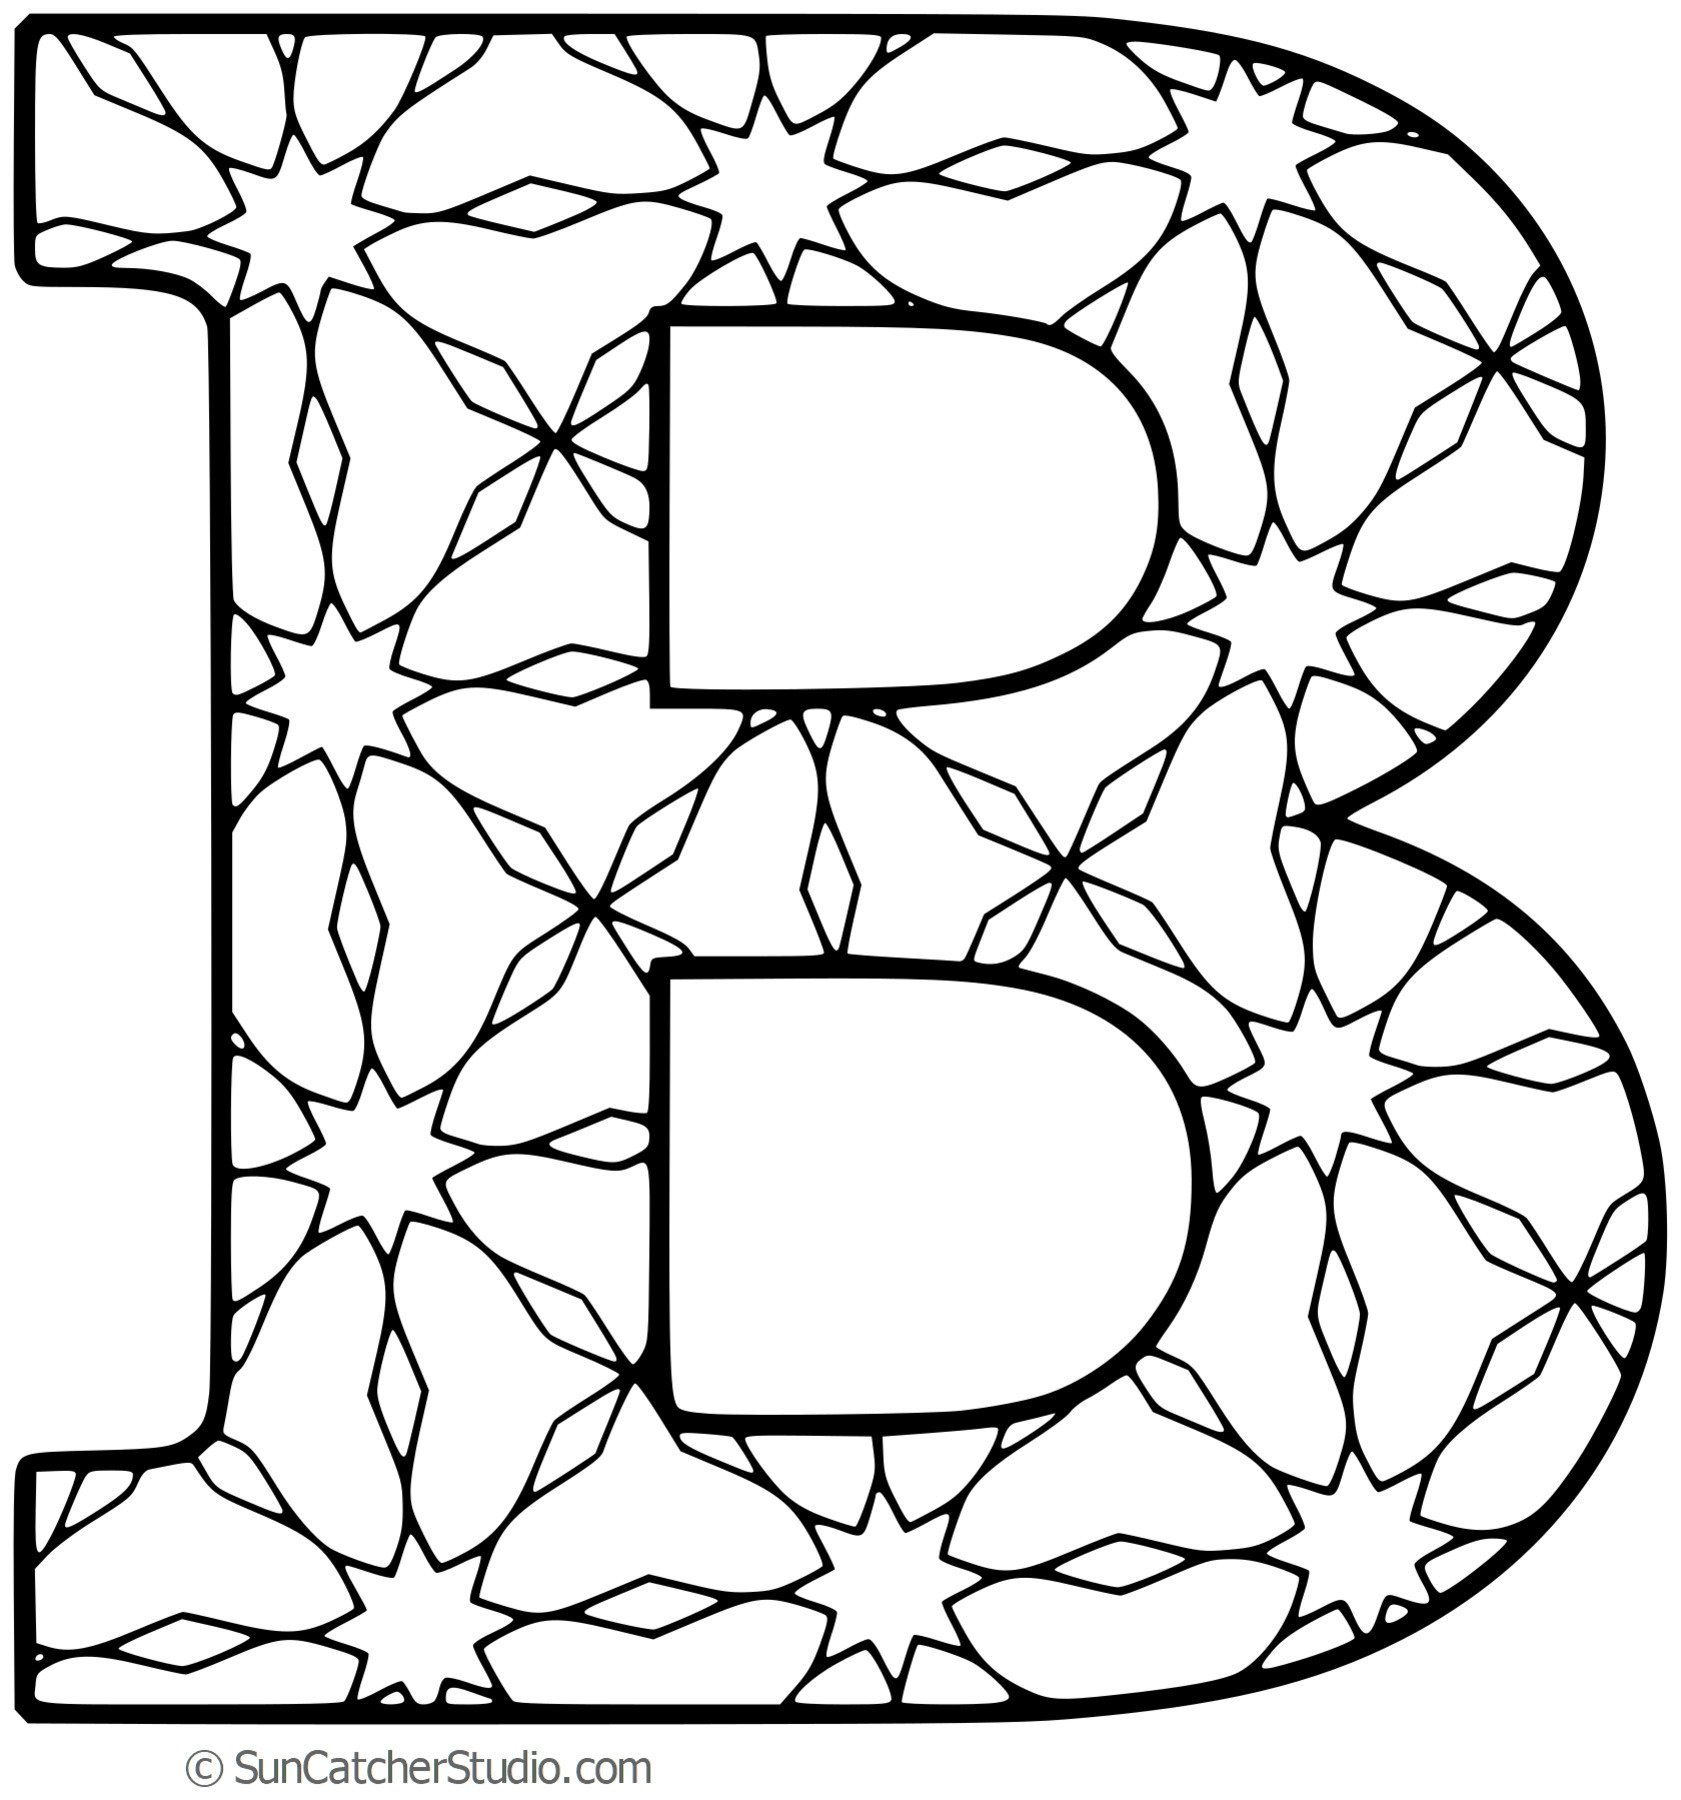 Free Printable Alphabet Letters For Coloring (With Patterns) - Free Printable Alphabet Letters To Color